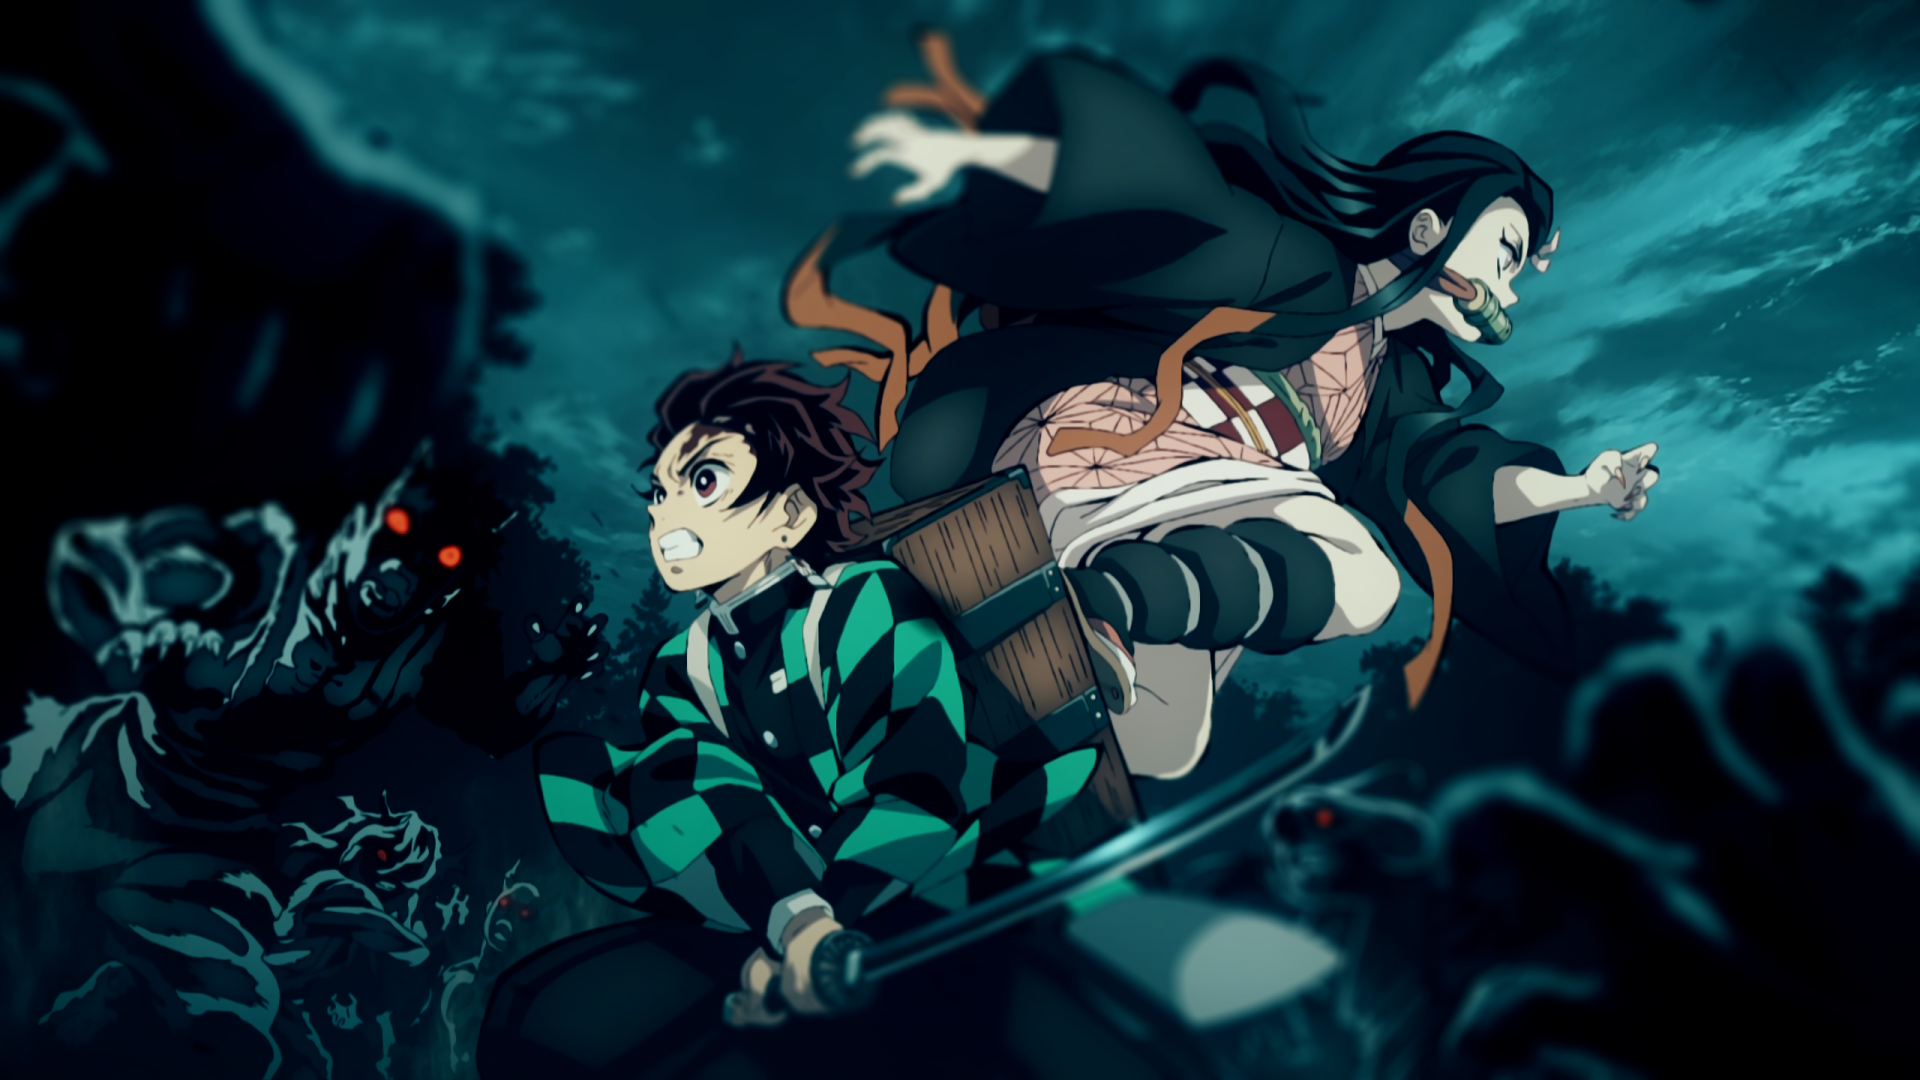 Demon Slayer Wallpapers Top Free Demon Slayer Backgrounds